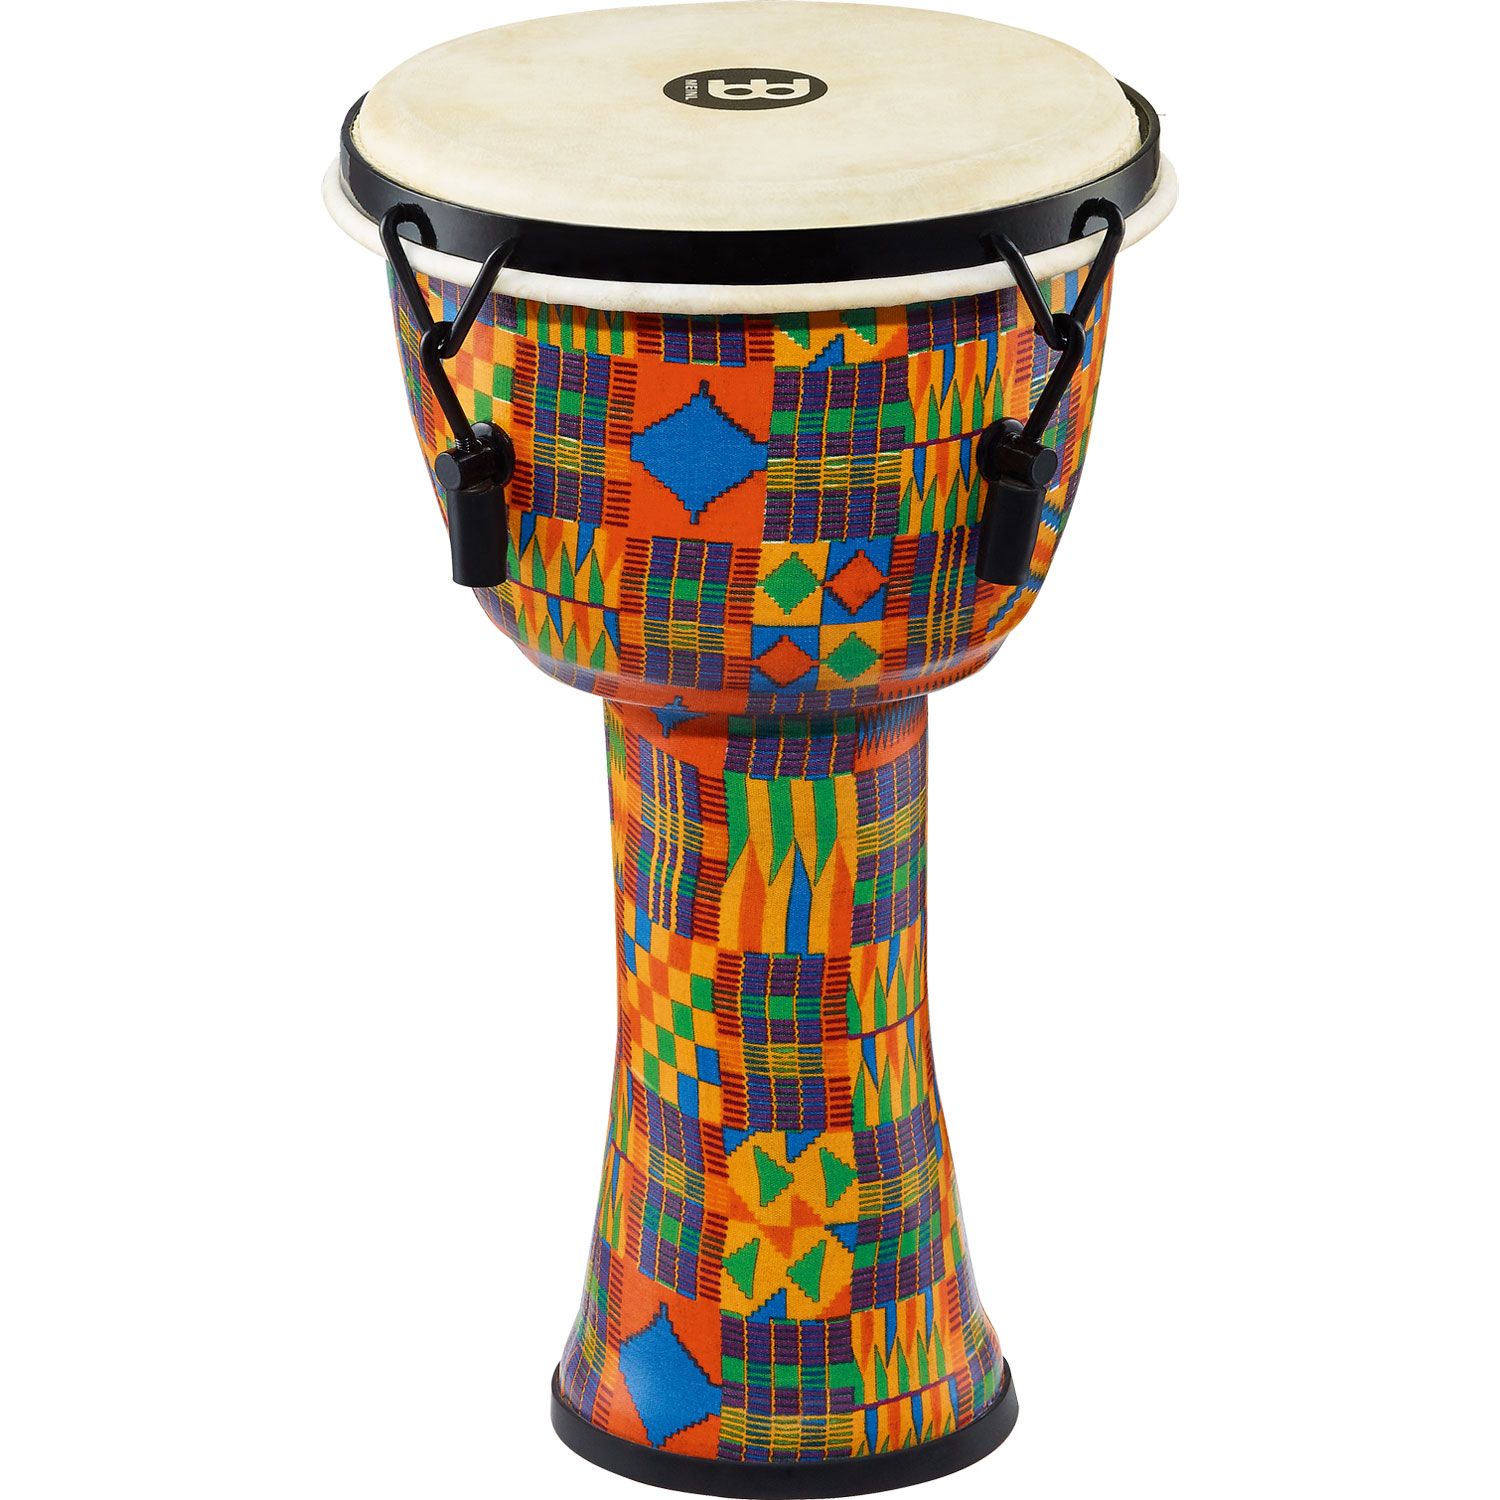 """Meinl 8"""" Mechanically-Tuned Travel Djembe in Kenyan Quilt with Natural Head"""